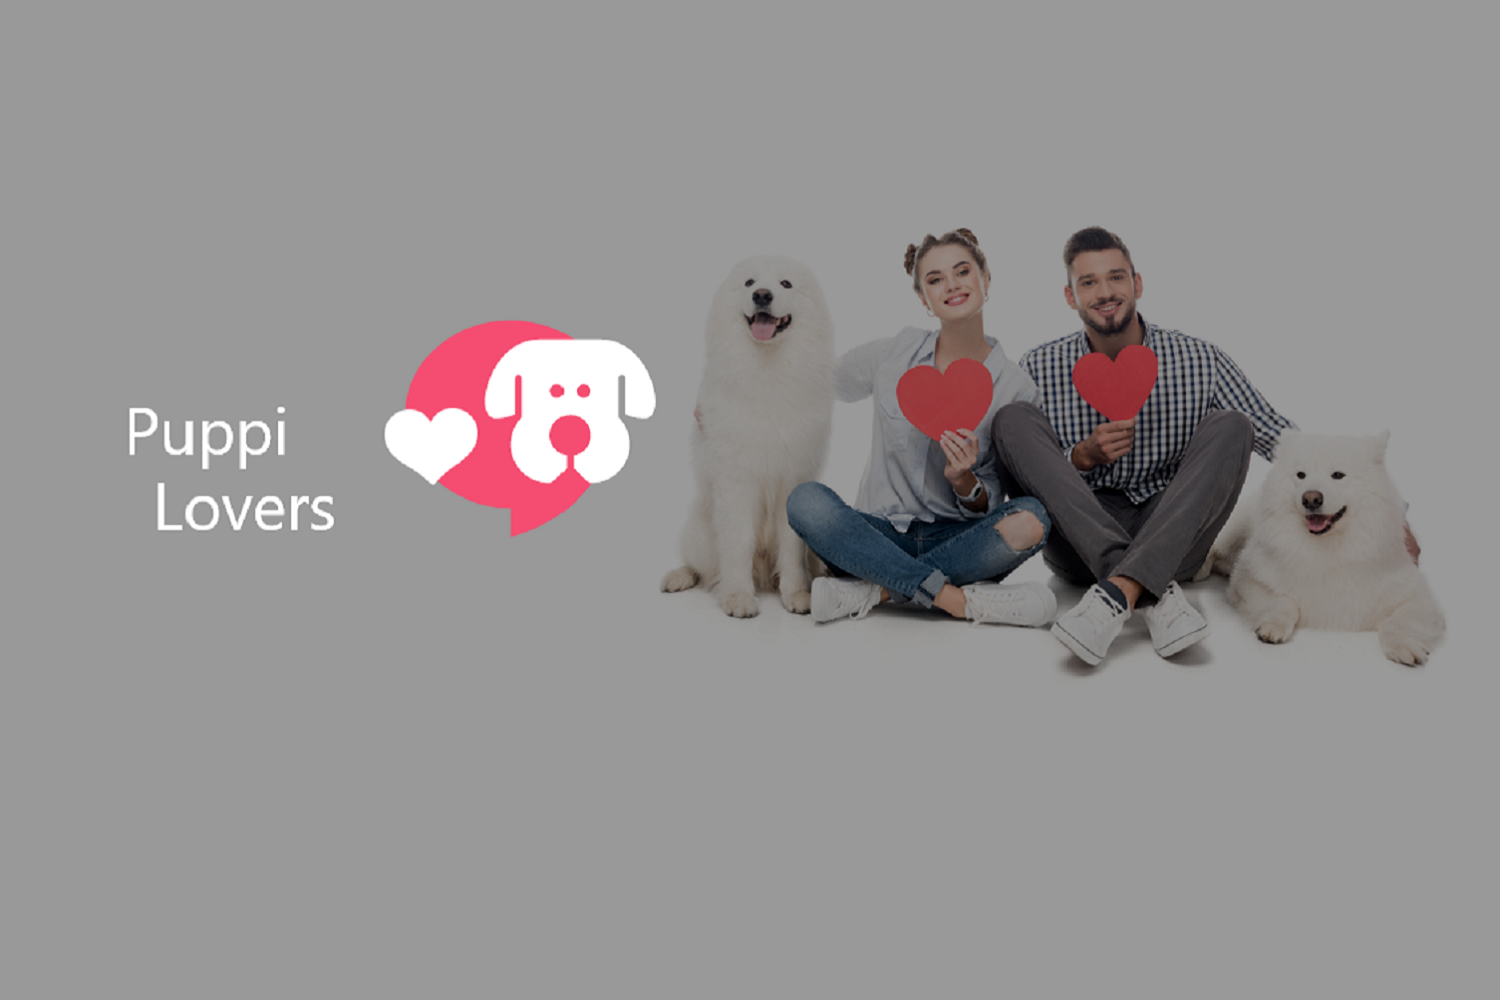 launch-of-puppi-lovers-app